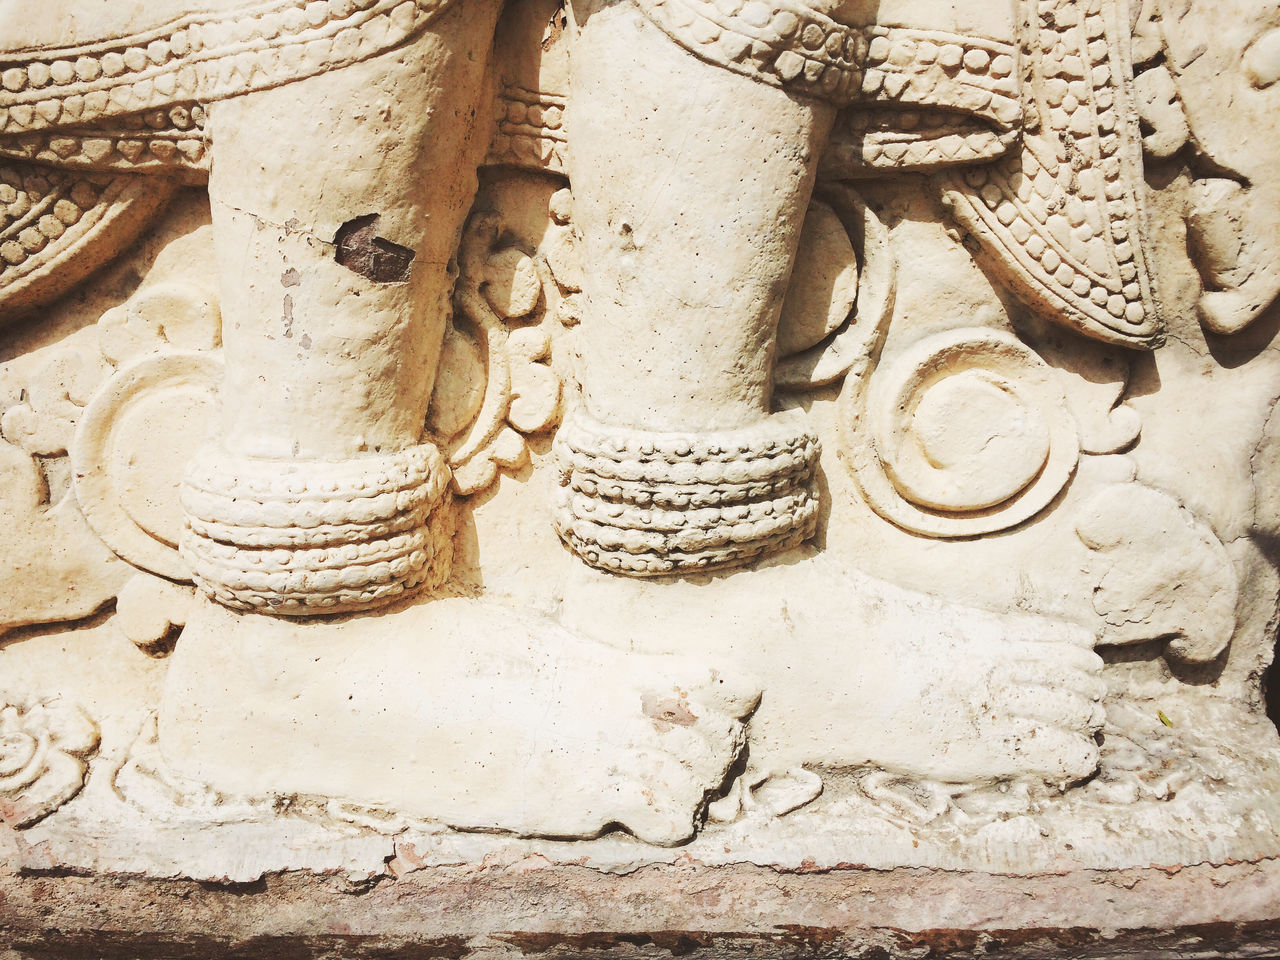 carving - craft product, sculpture, old ruin, religion, no people, history, statue, ancient, architecture, bas relief, built structure, spirituality, day, ancient civilization, place of worship, outdoors, close-up